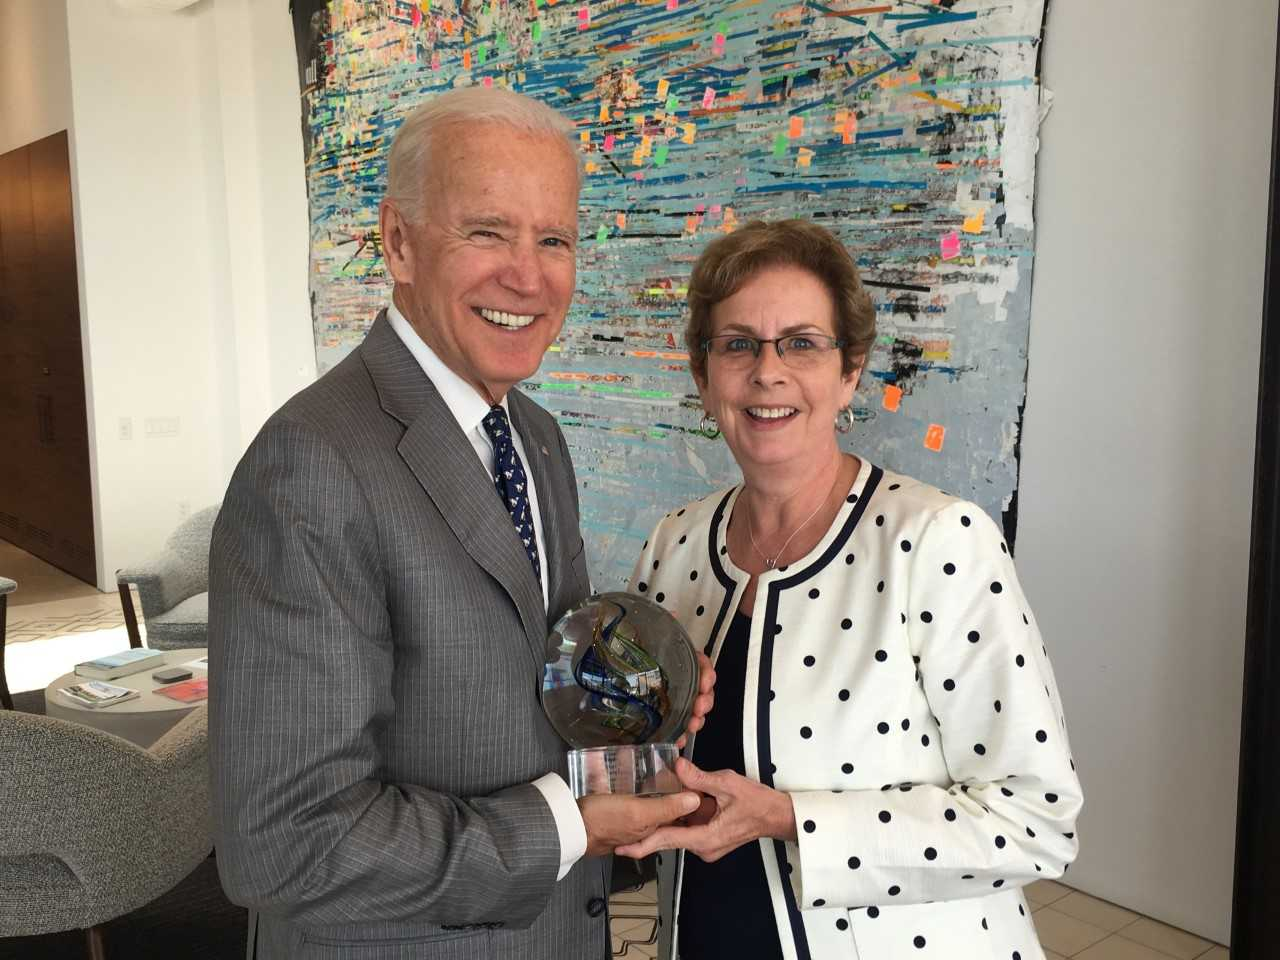 Joe Biden, Sue Schneider